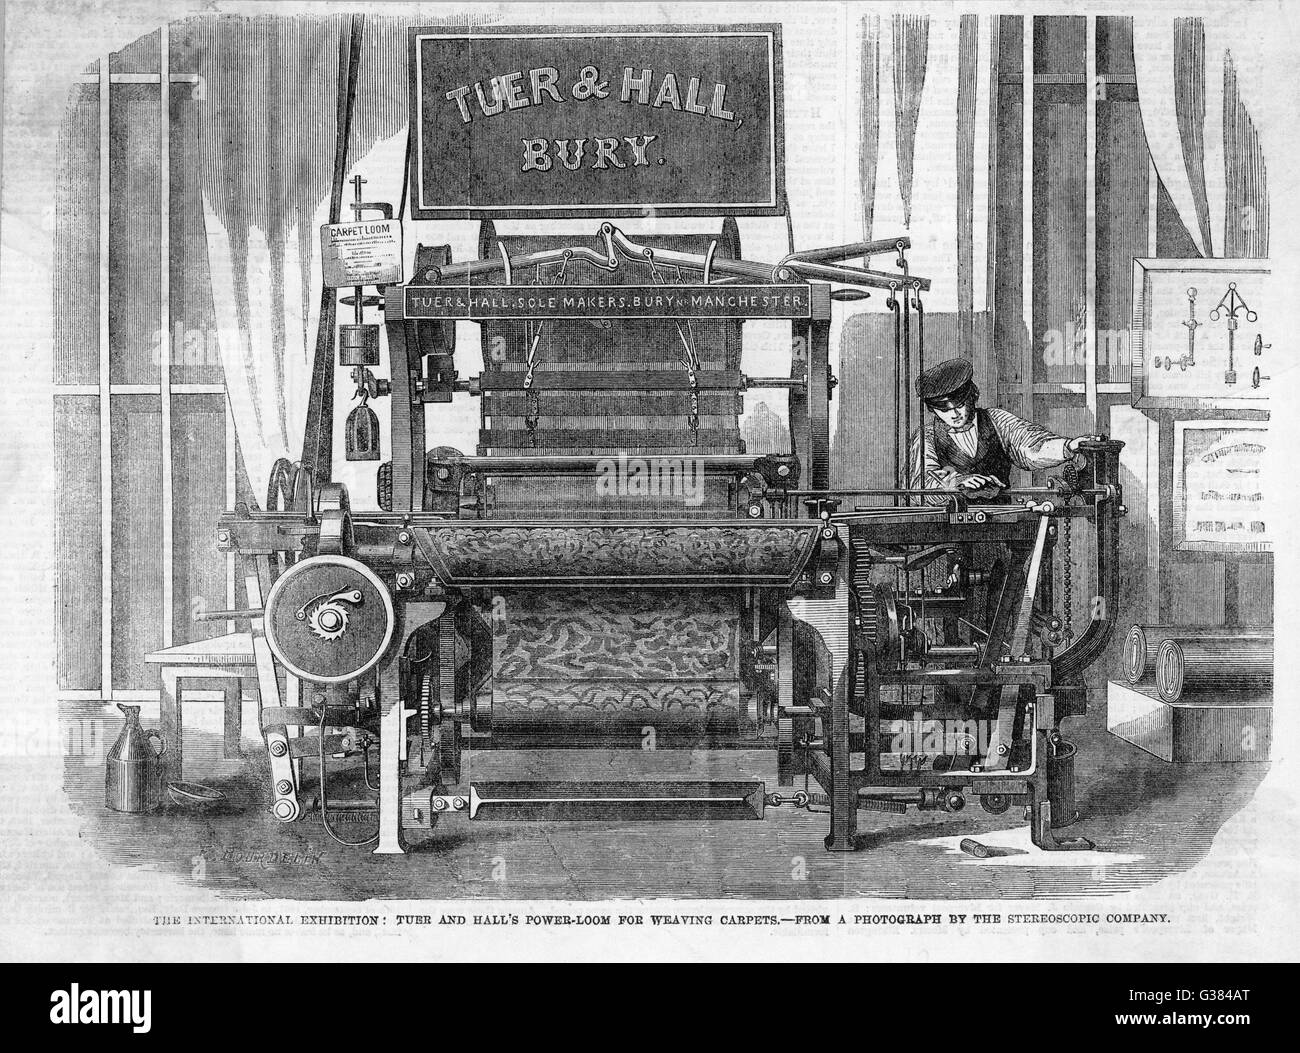 Tuer and Hall's Power-Loom for  weaving carpets. (Exhibited at  the 1862 Exhibition, London).        Date: 1862 - Stock Image